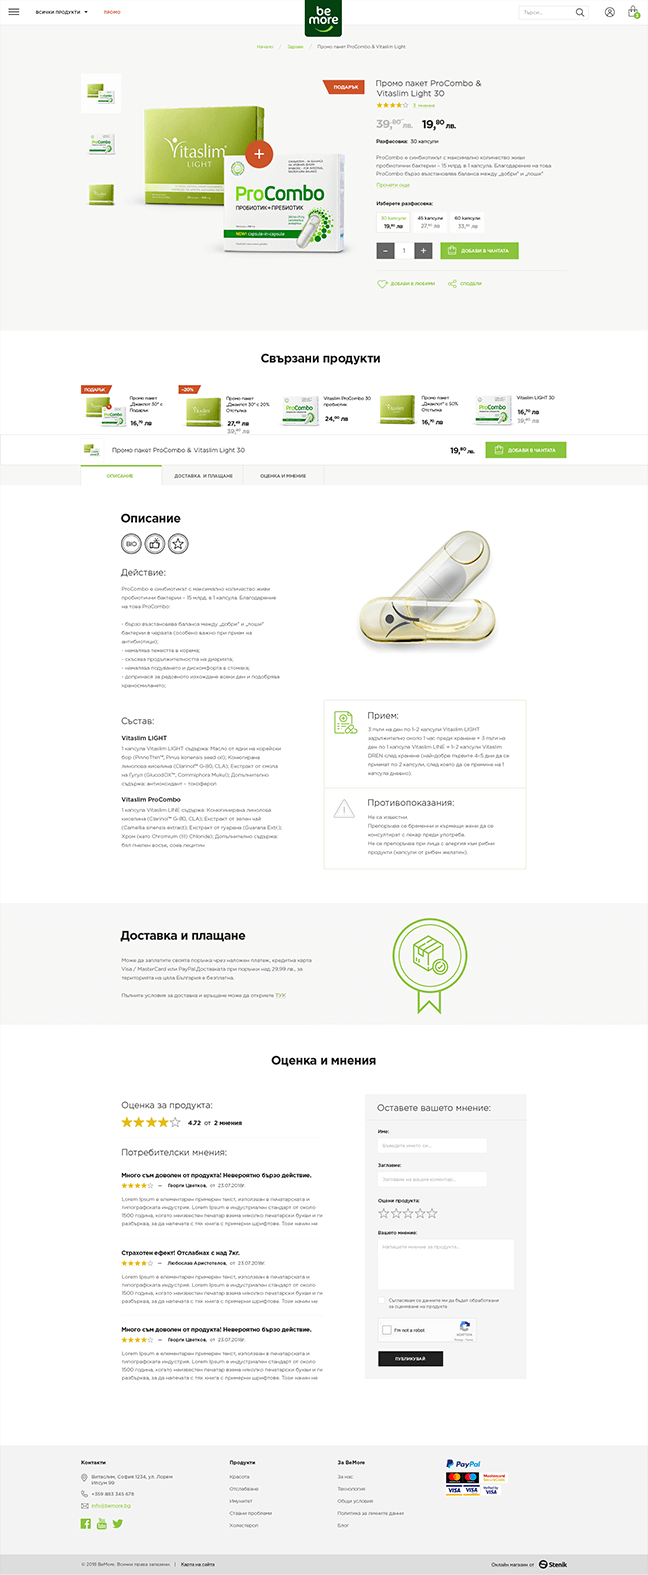 BeMore - product details page